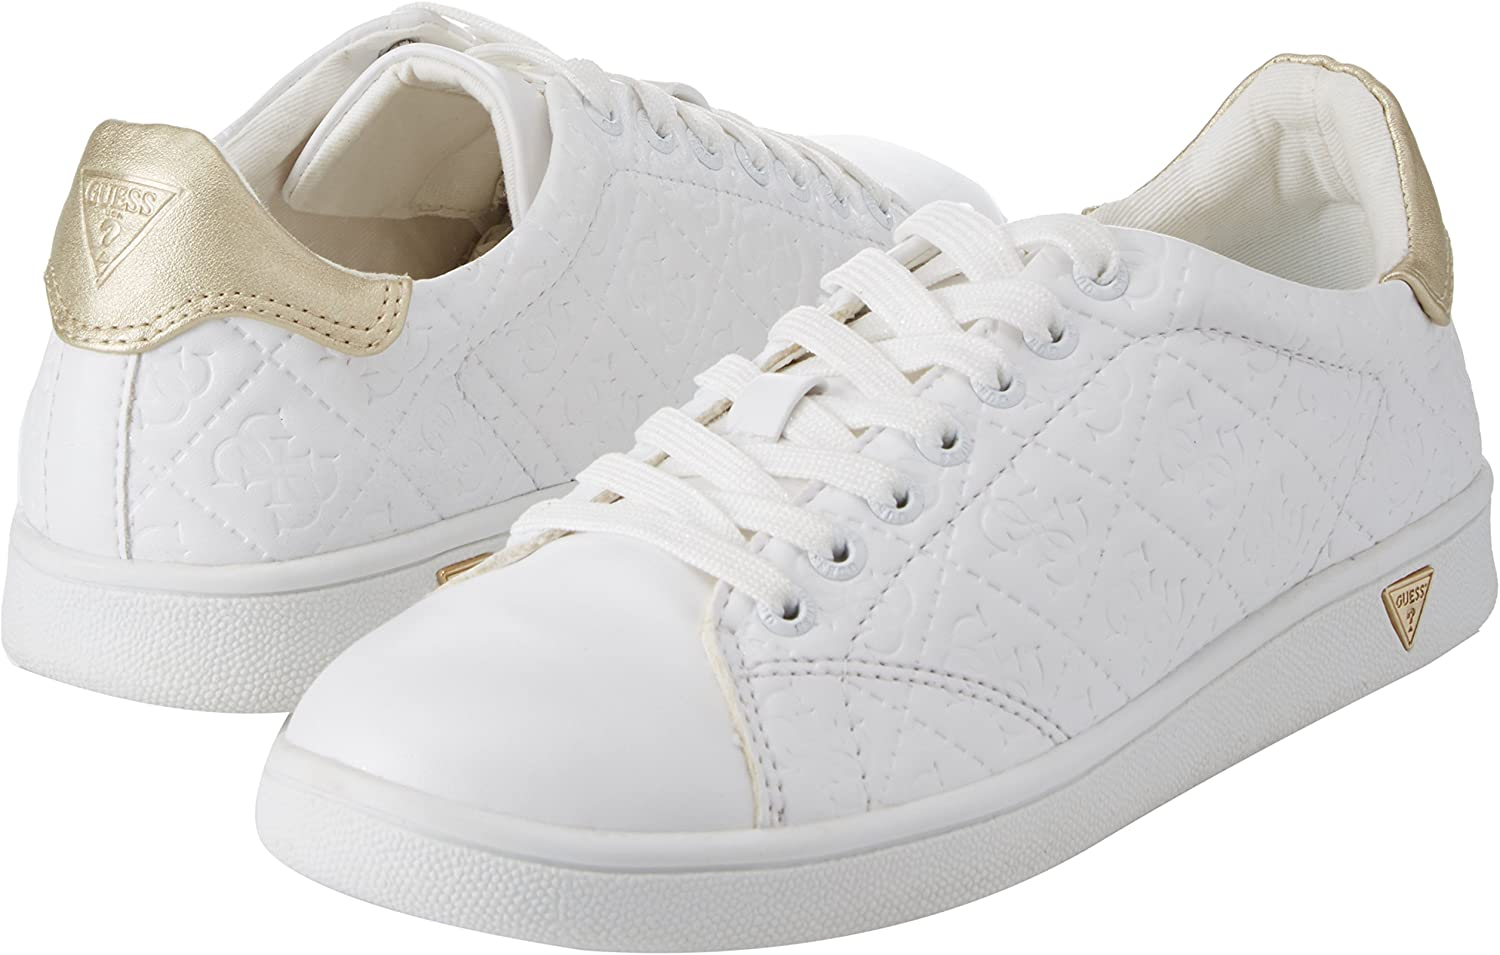 Footwear Active Lady Trainers